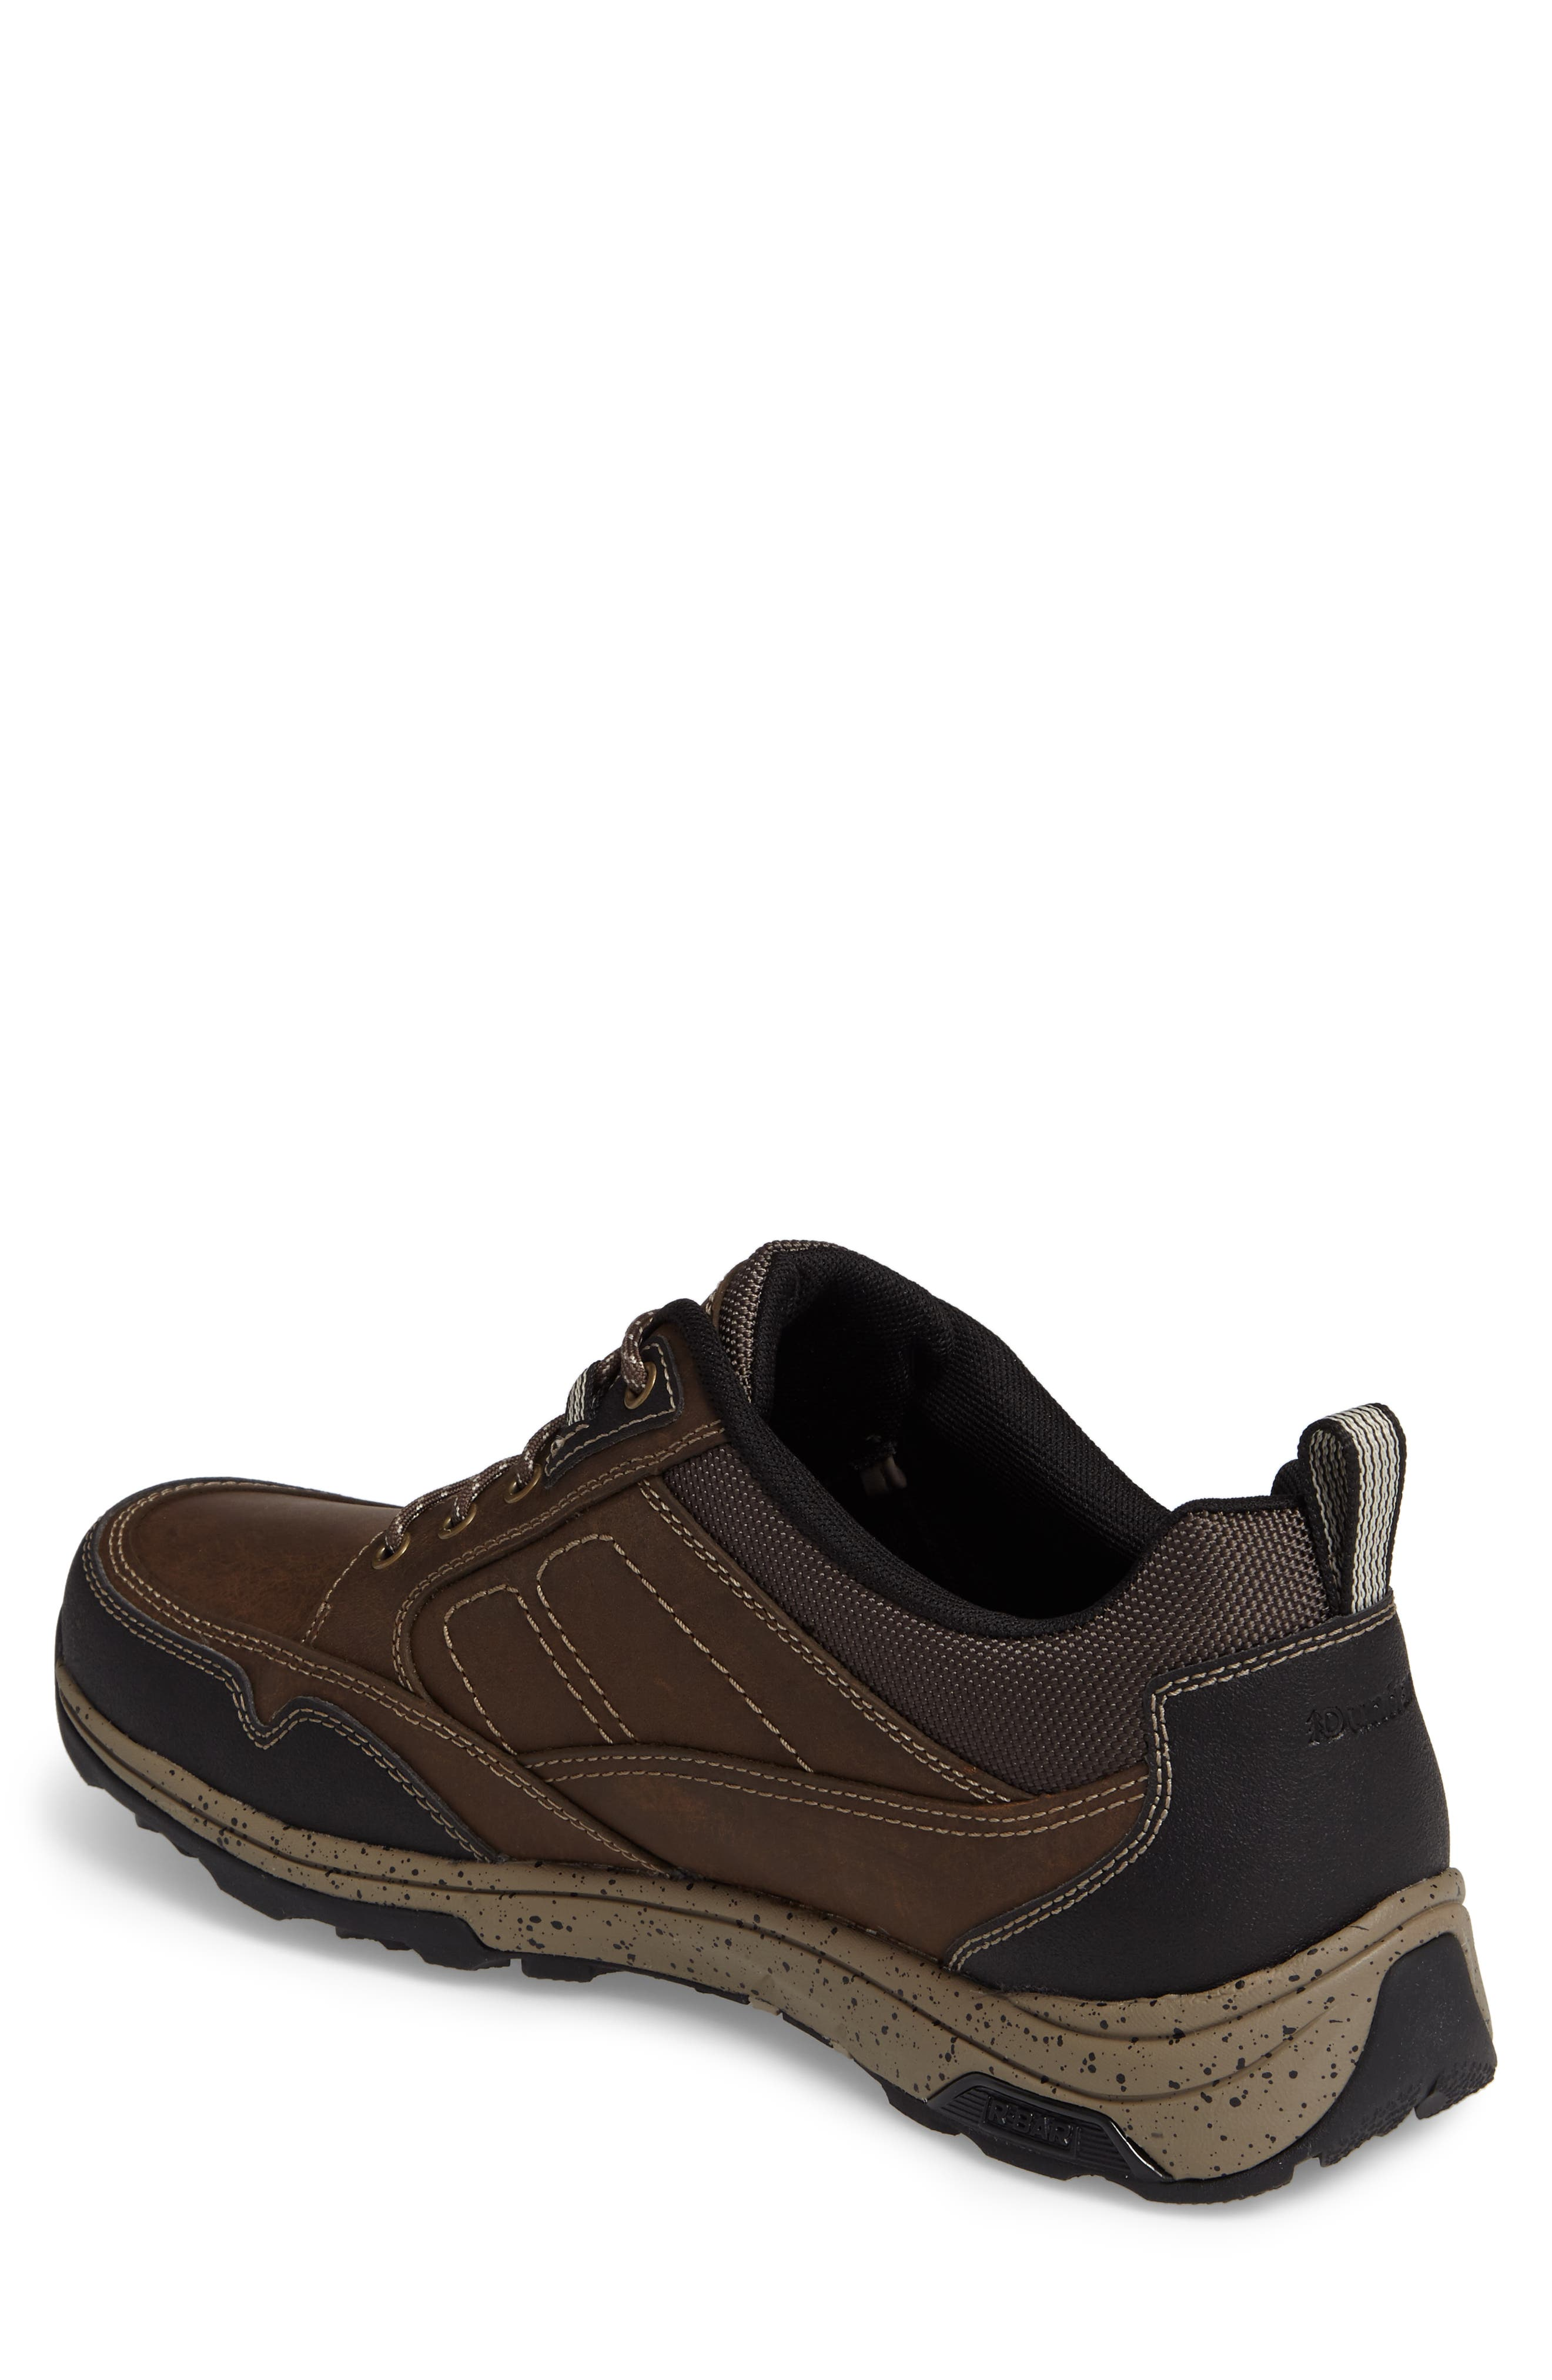 Trukka Hiking Shoe,                             Alternate thumbnail 2, color,                             TAUPE